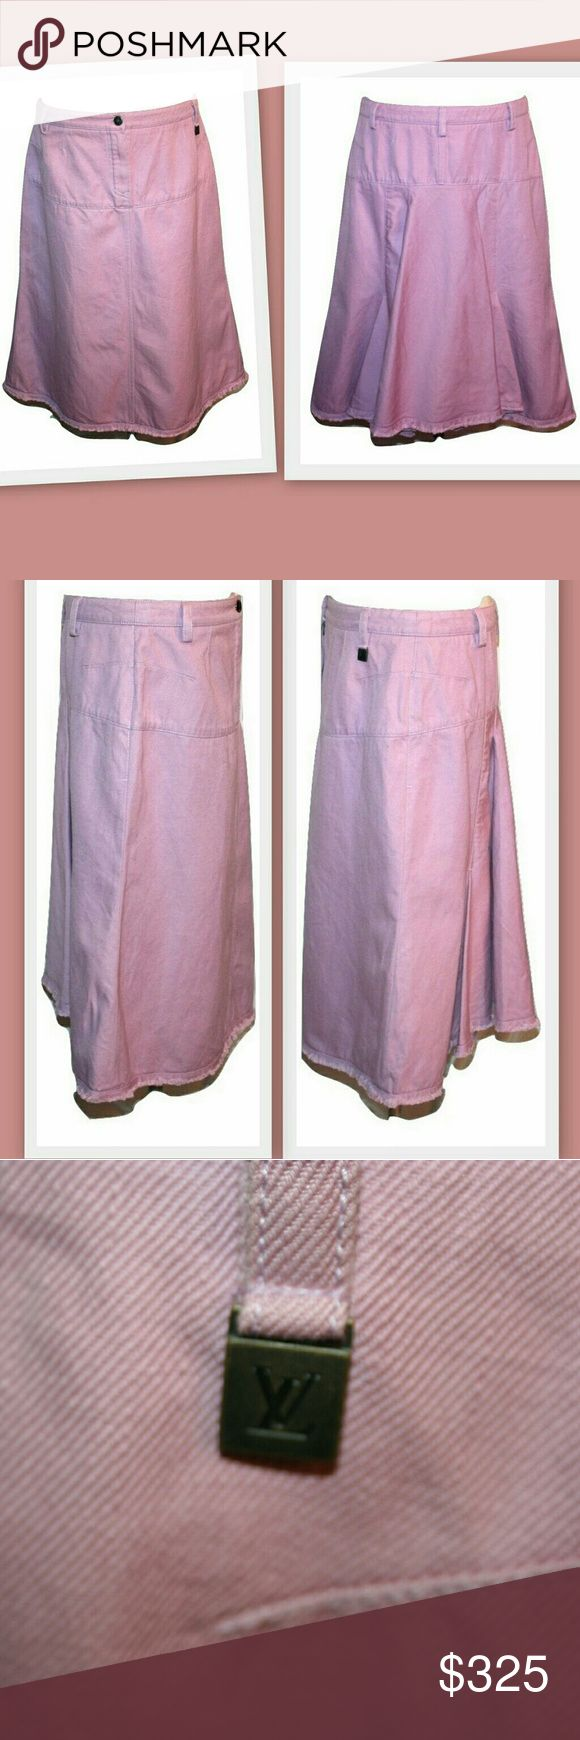 """Louis Vuitton mauve back pleat skirt Louis Vuitton skirt. Mauve colored heavy denim canvas type fabric.  A-line cut. Fly front zipper with a logoed waist button.  LV hang tag at the waist. Belt loops. Fringed hem. Couture finished seams. Unlined.   Please note: the color photographed more lavender from a far, but is definitely more of a pinkish mauve as seen in the closeup photos of the LV tag and button.   75% cotton 25% linen  Made in France  Marked size 44 Waistband 33"""" Hips 42"""" Length…"""